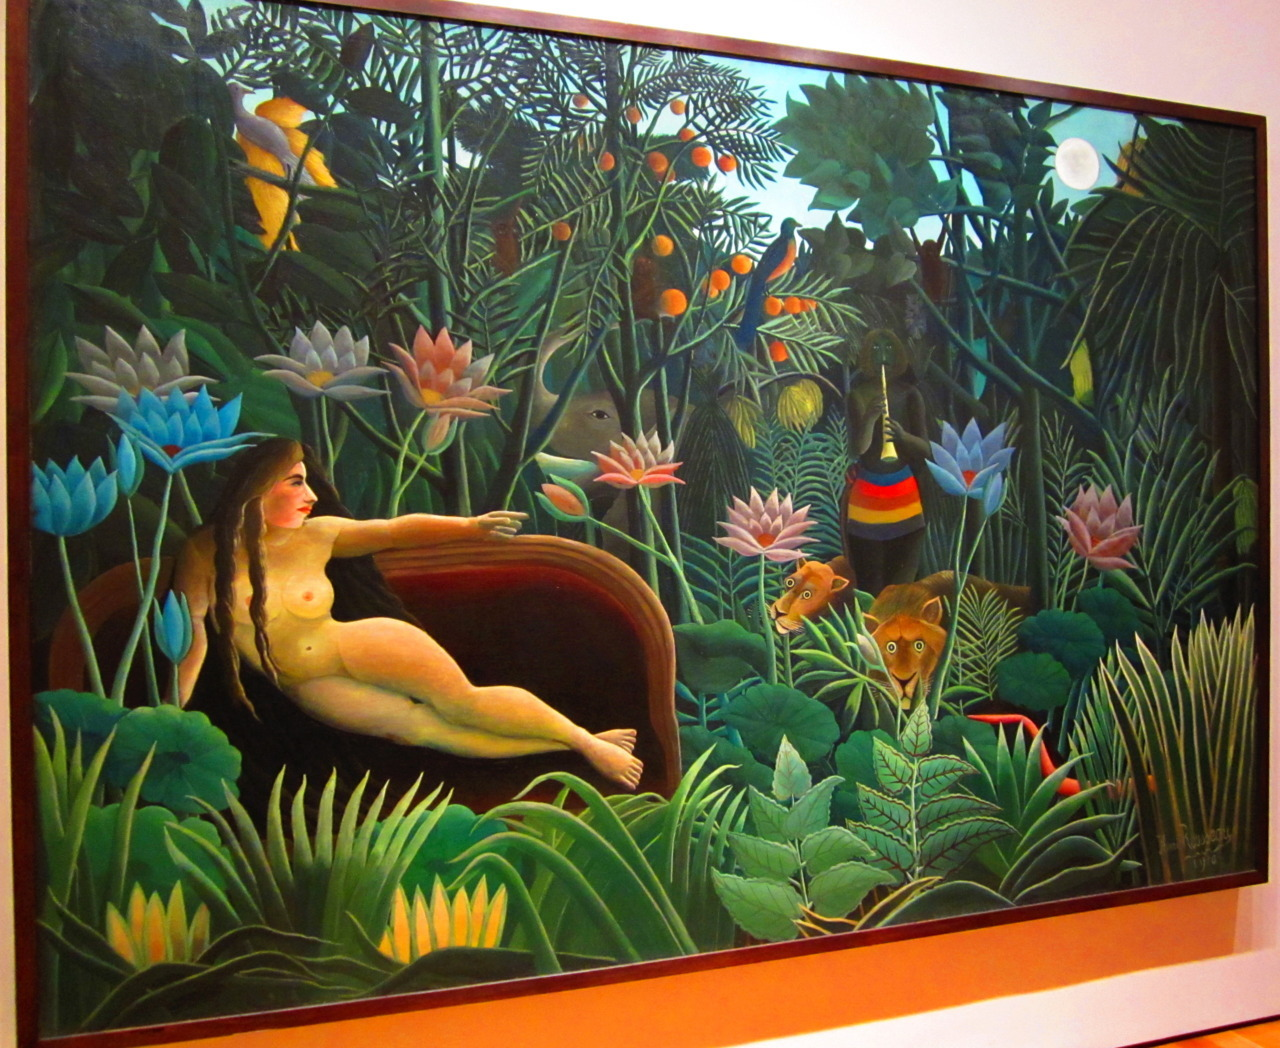 The Dream - Henri Rousseau (1910)